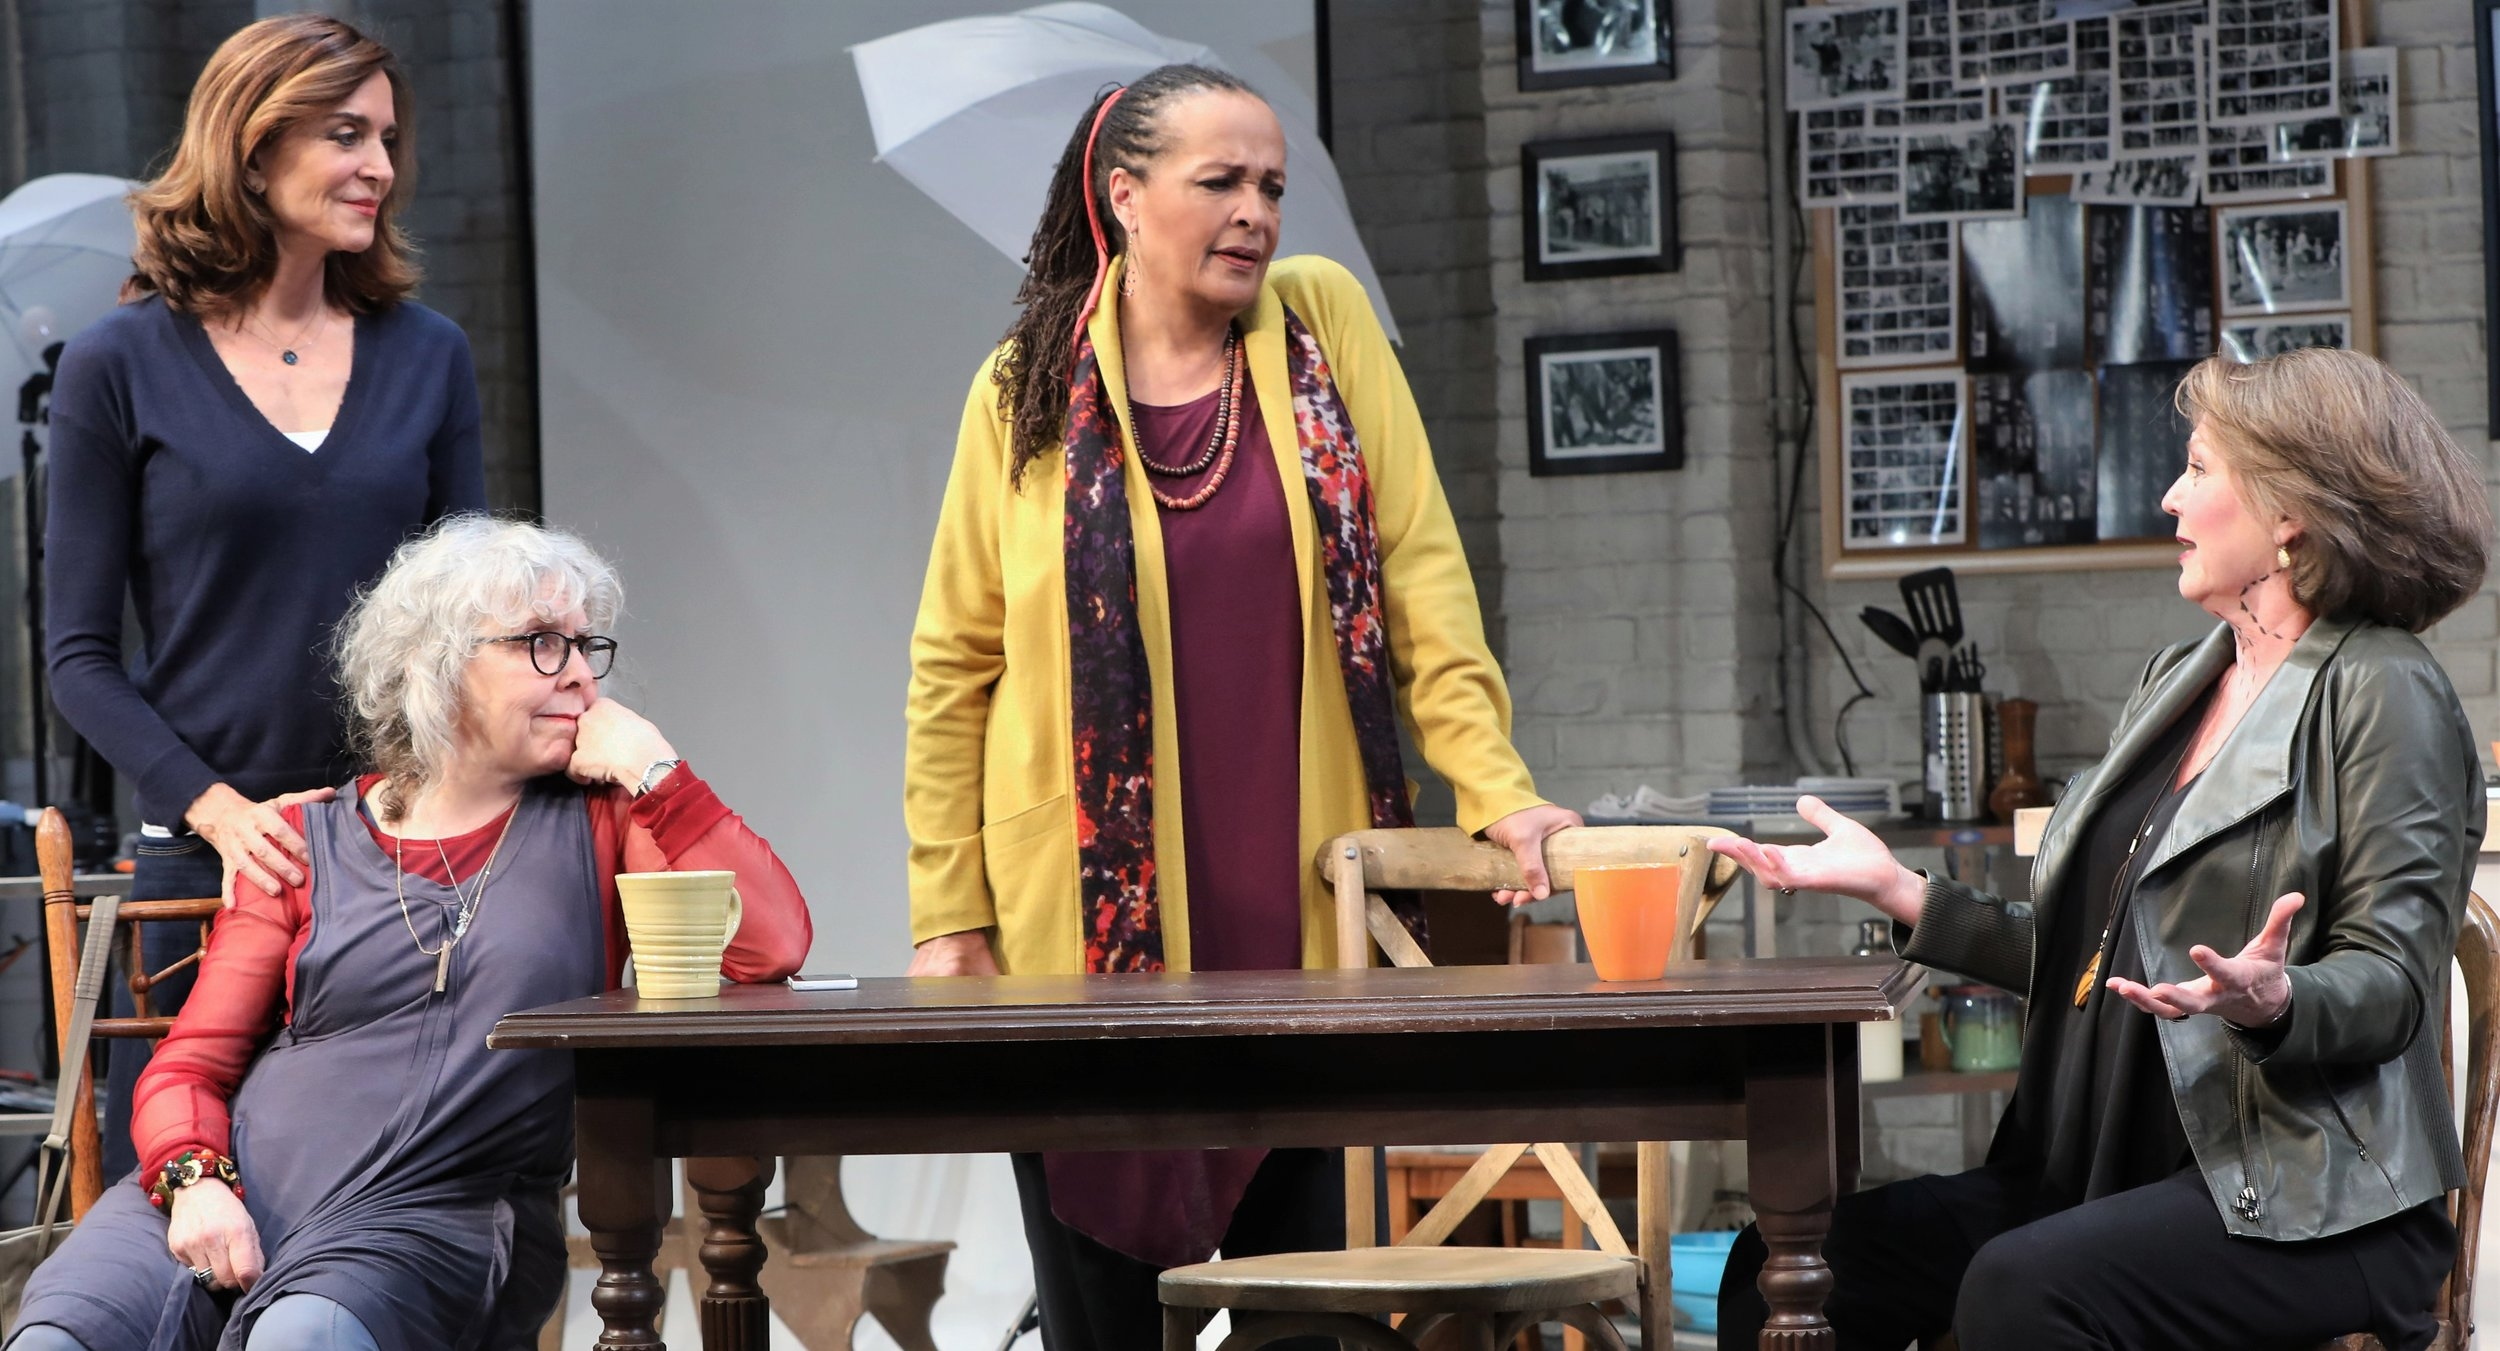 The cast of Susan Miller's 20th Century Blues: Polly Draper as Danny, Kathryn Grody as Gabby, Franchelle Stewart Dorn as Mac, and Ellen Parker as Sil